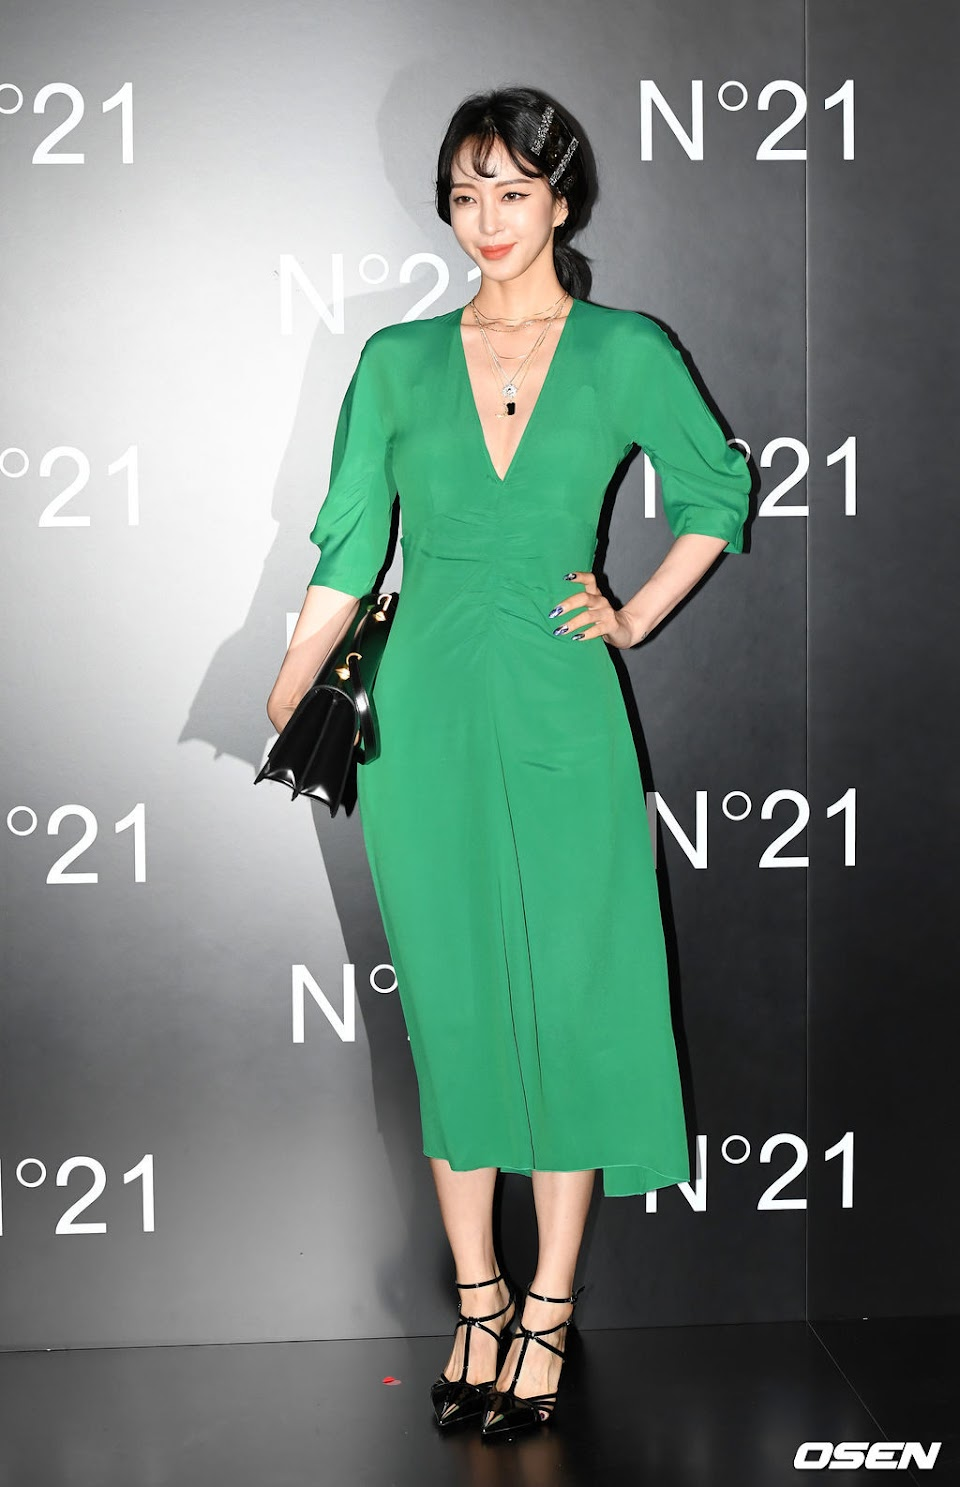 han ye seul green dress 5